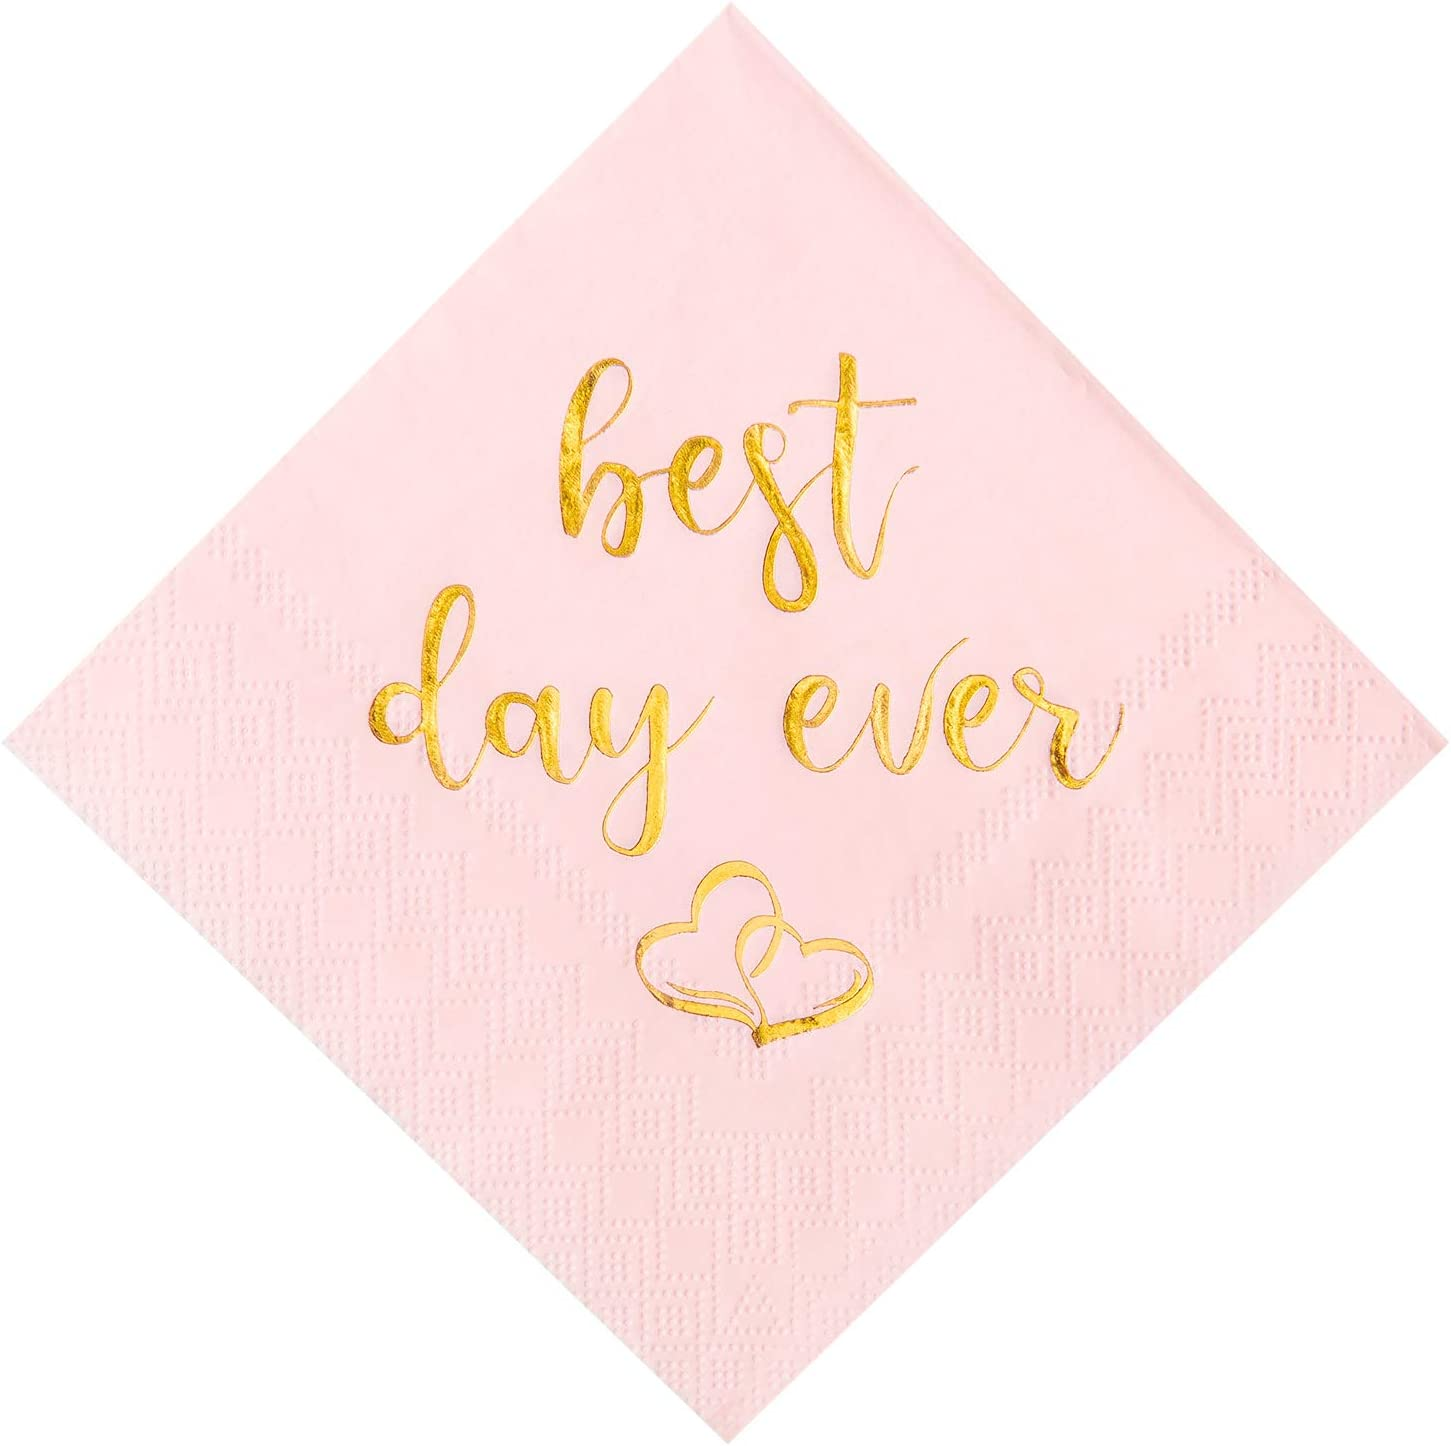 Crisky Wedding Cocktail Napkins Pink Gold Best Day Ever Napkins for Wedding Dessert Beverage Table Decorations Wedding Party Supplies 100 Pcs, 3-ply